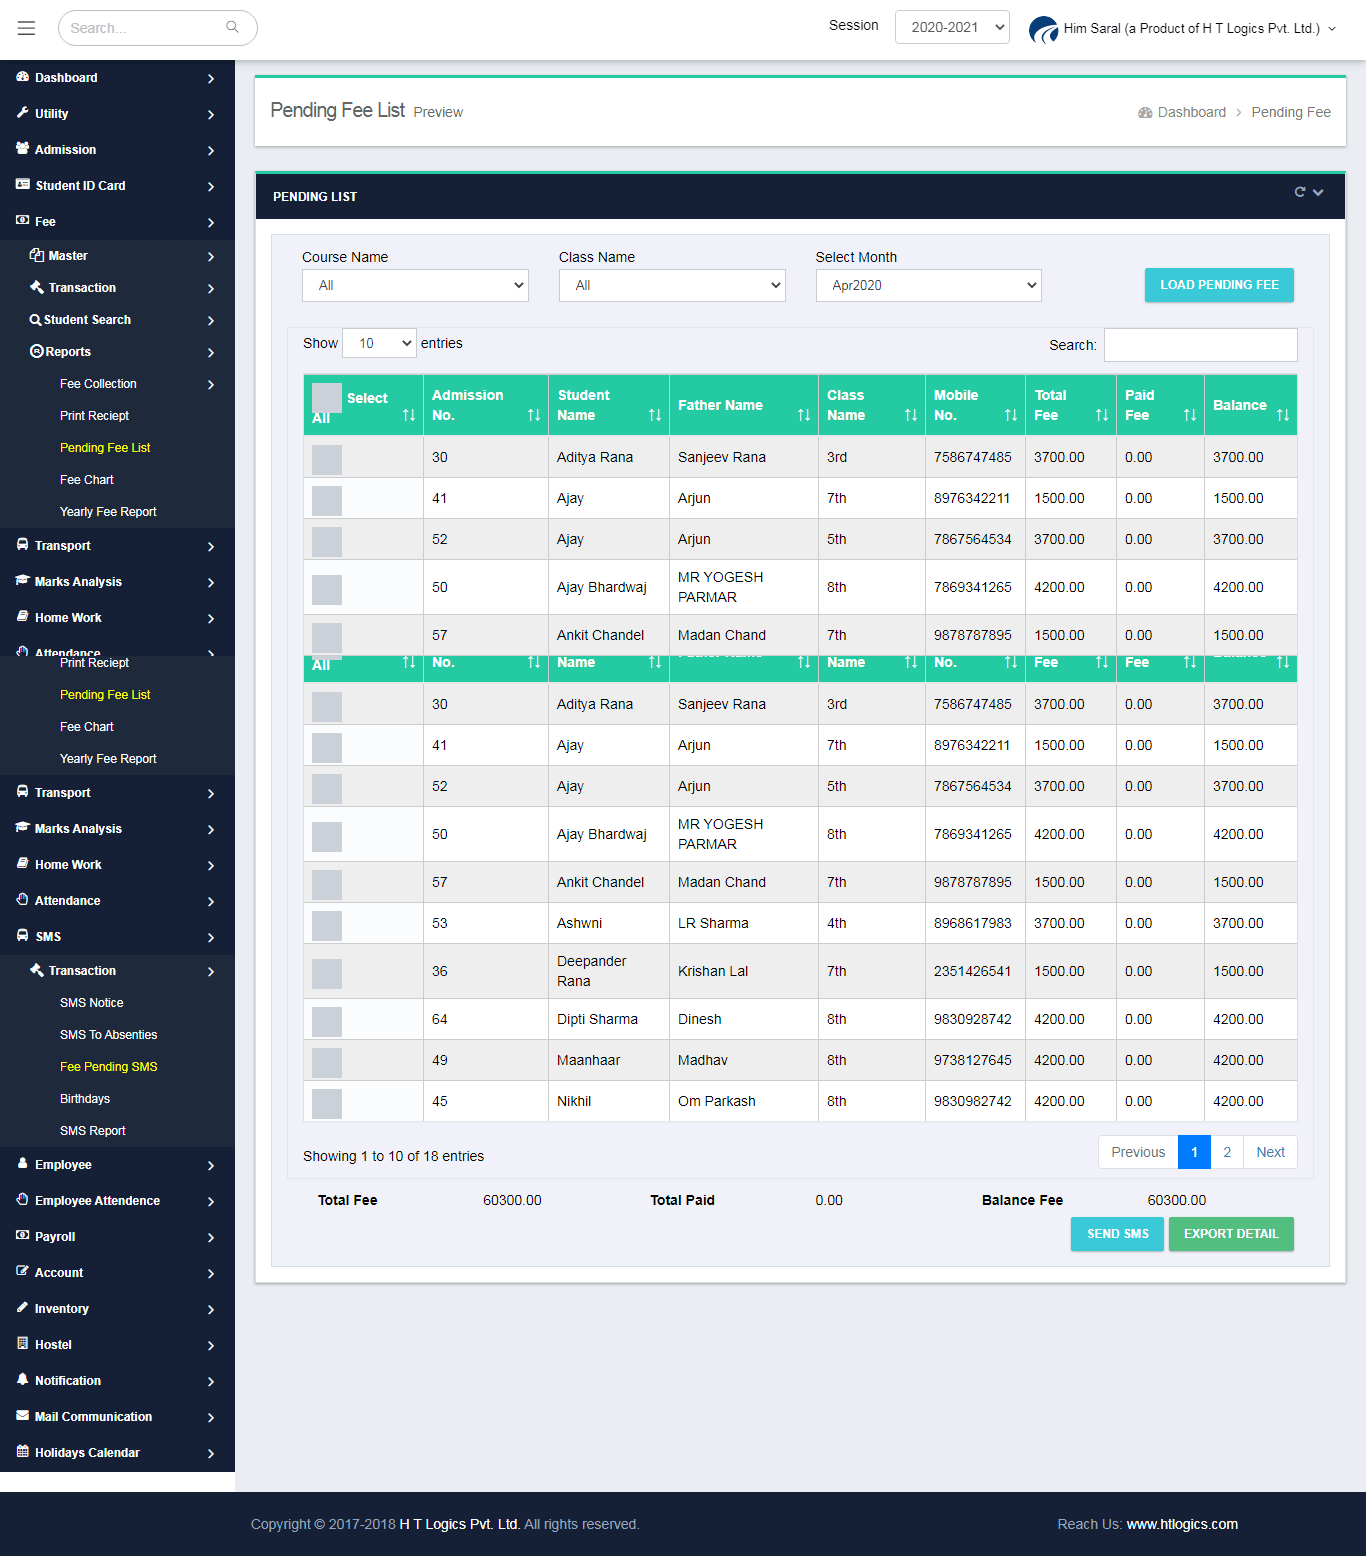 Pending Fee Report - Fee Management Software